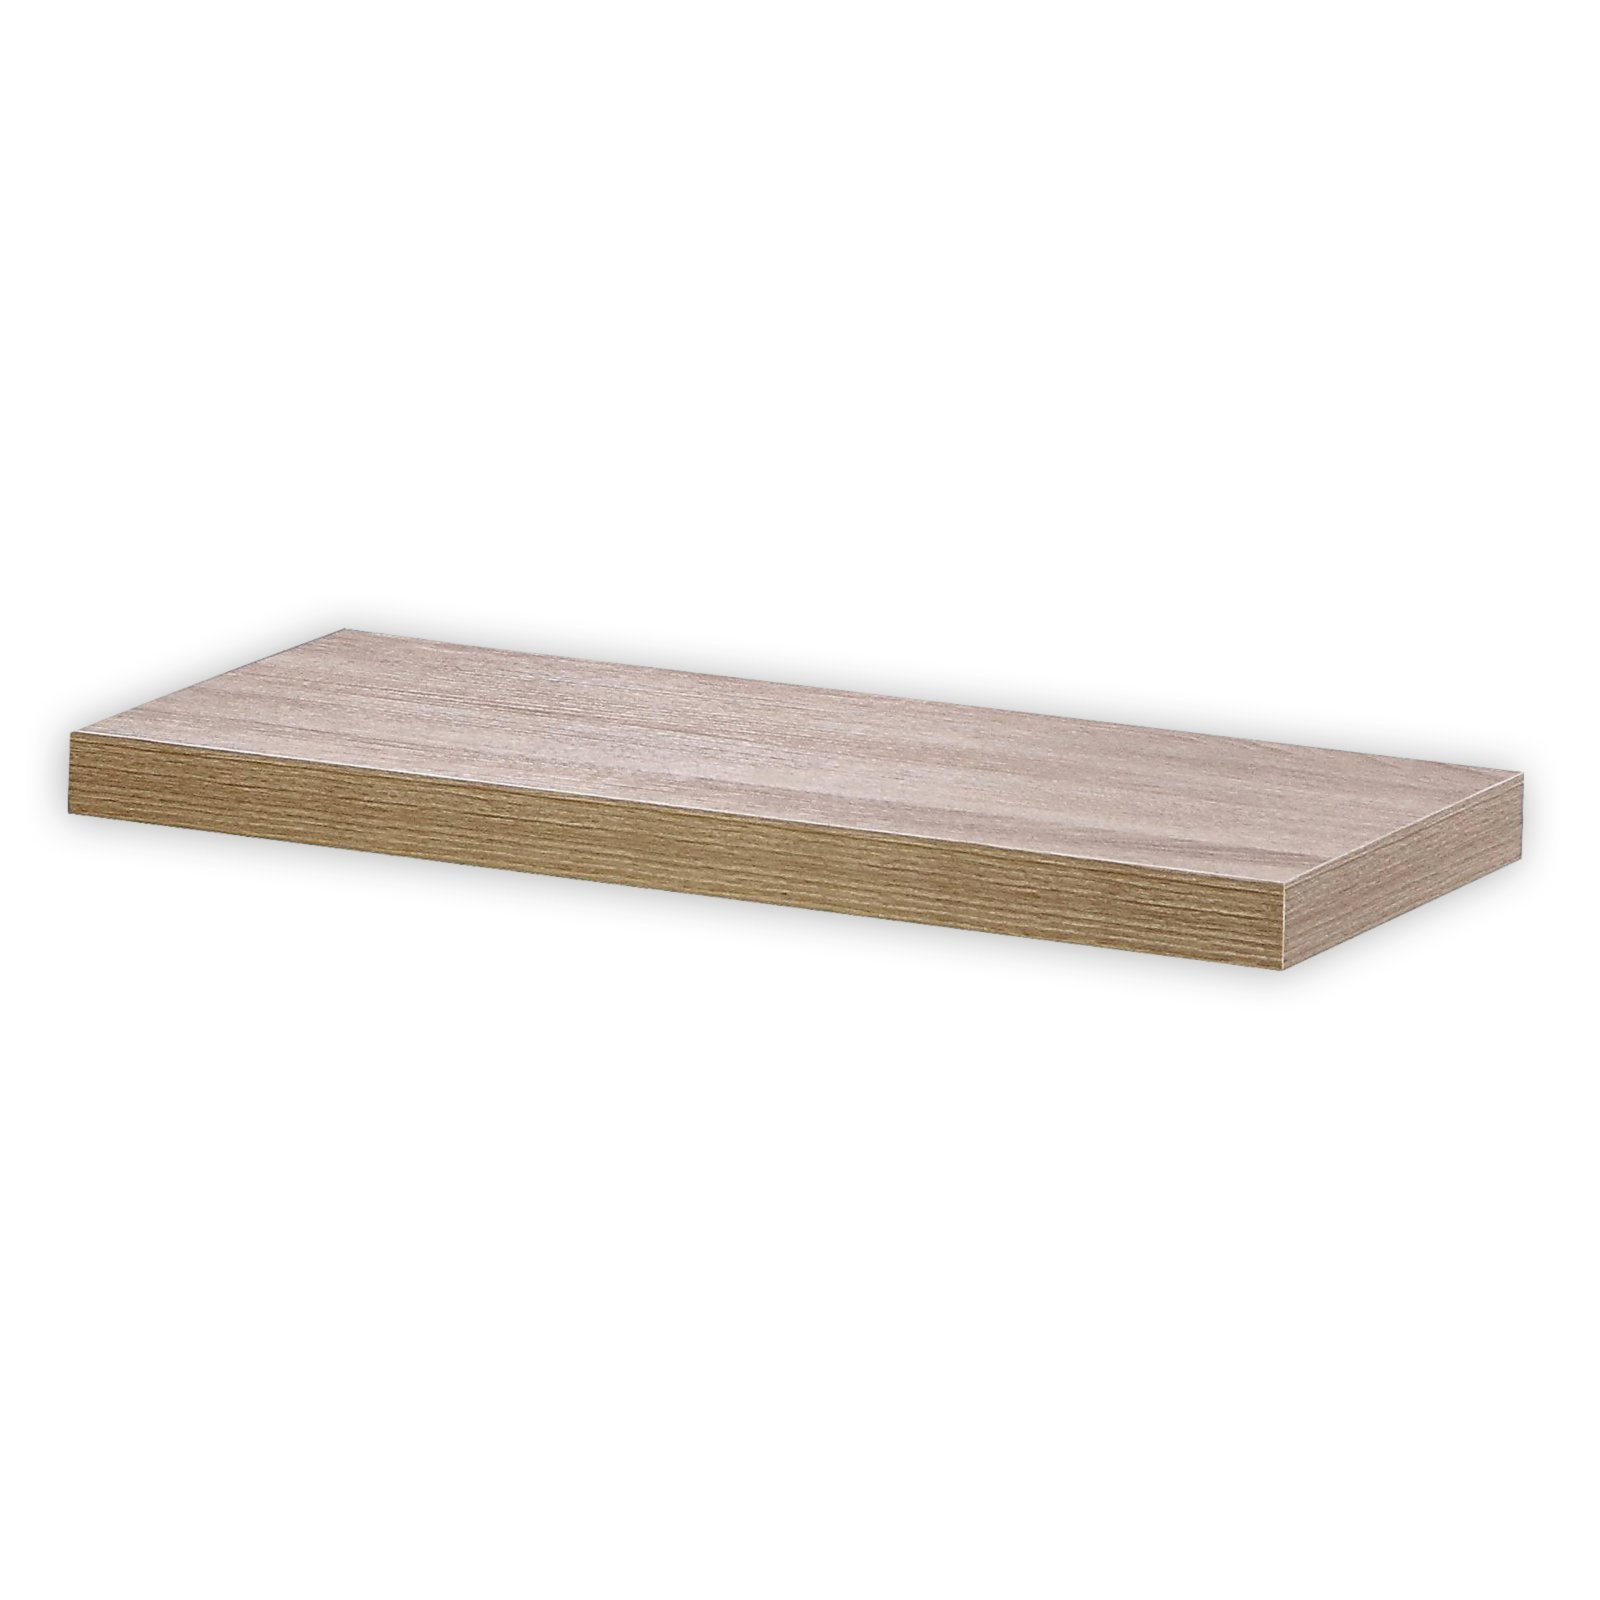 Wandregal - Sonoma Eiche - 60 cm  Wandregale & Boards ...